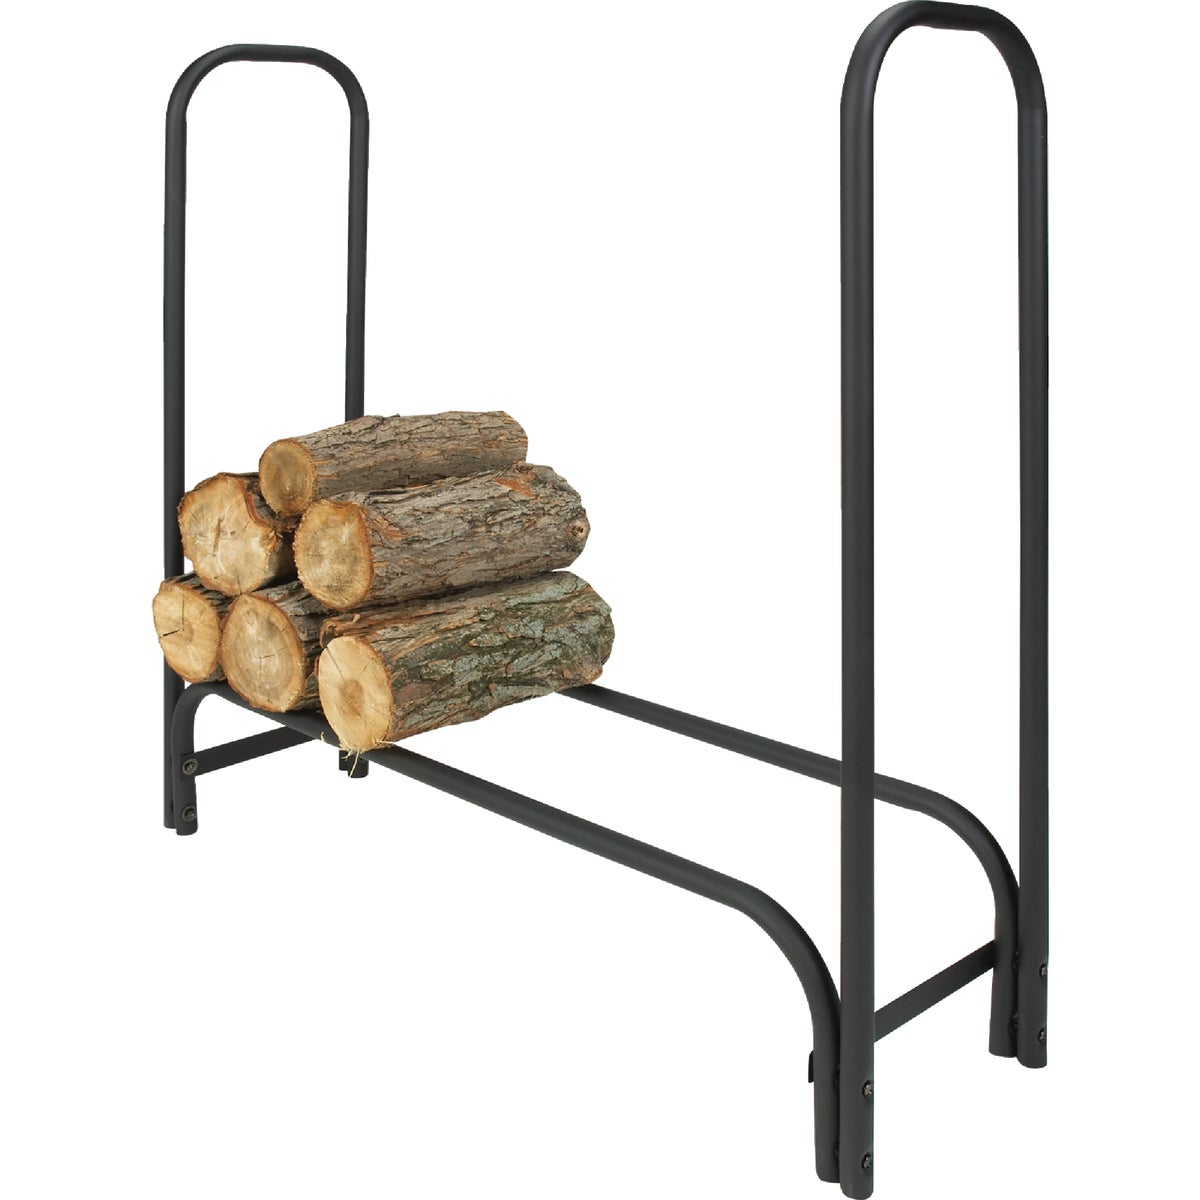 BLACK TUBE 8' LOG RACK